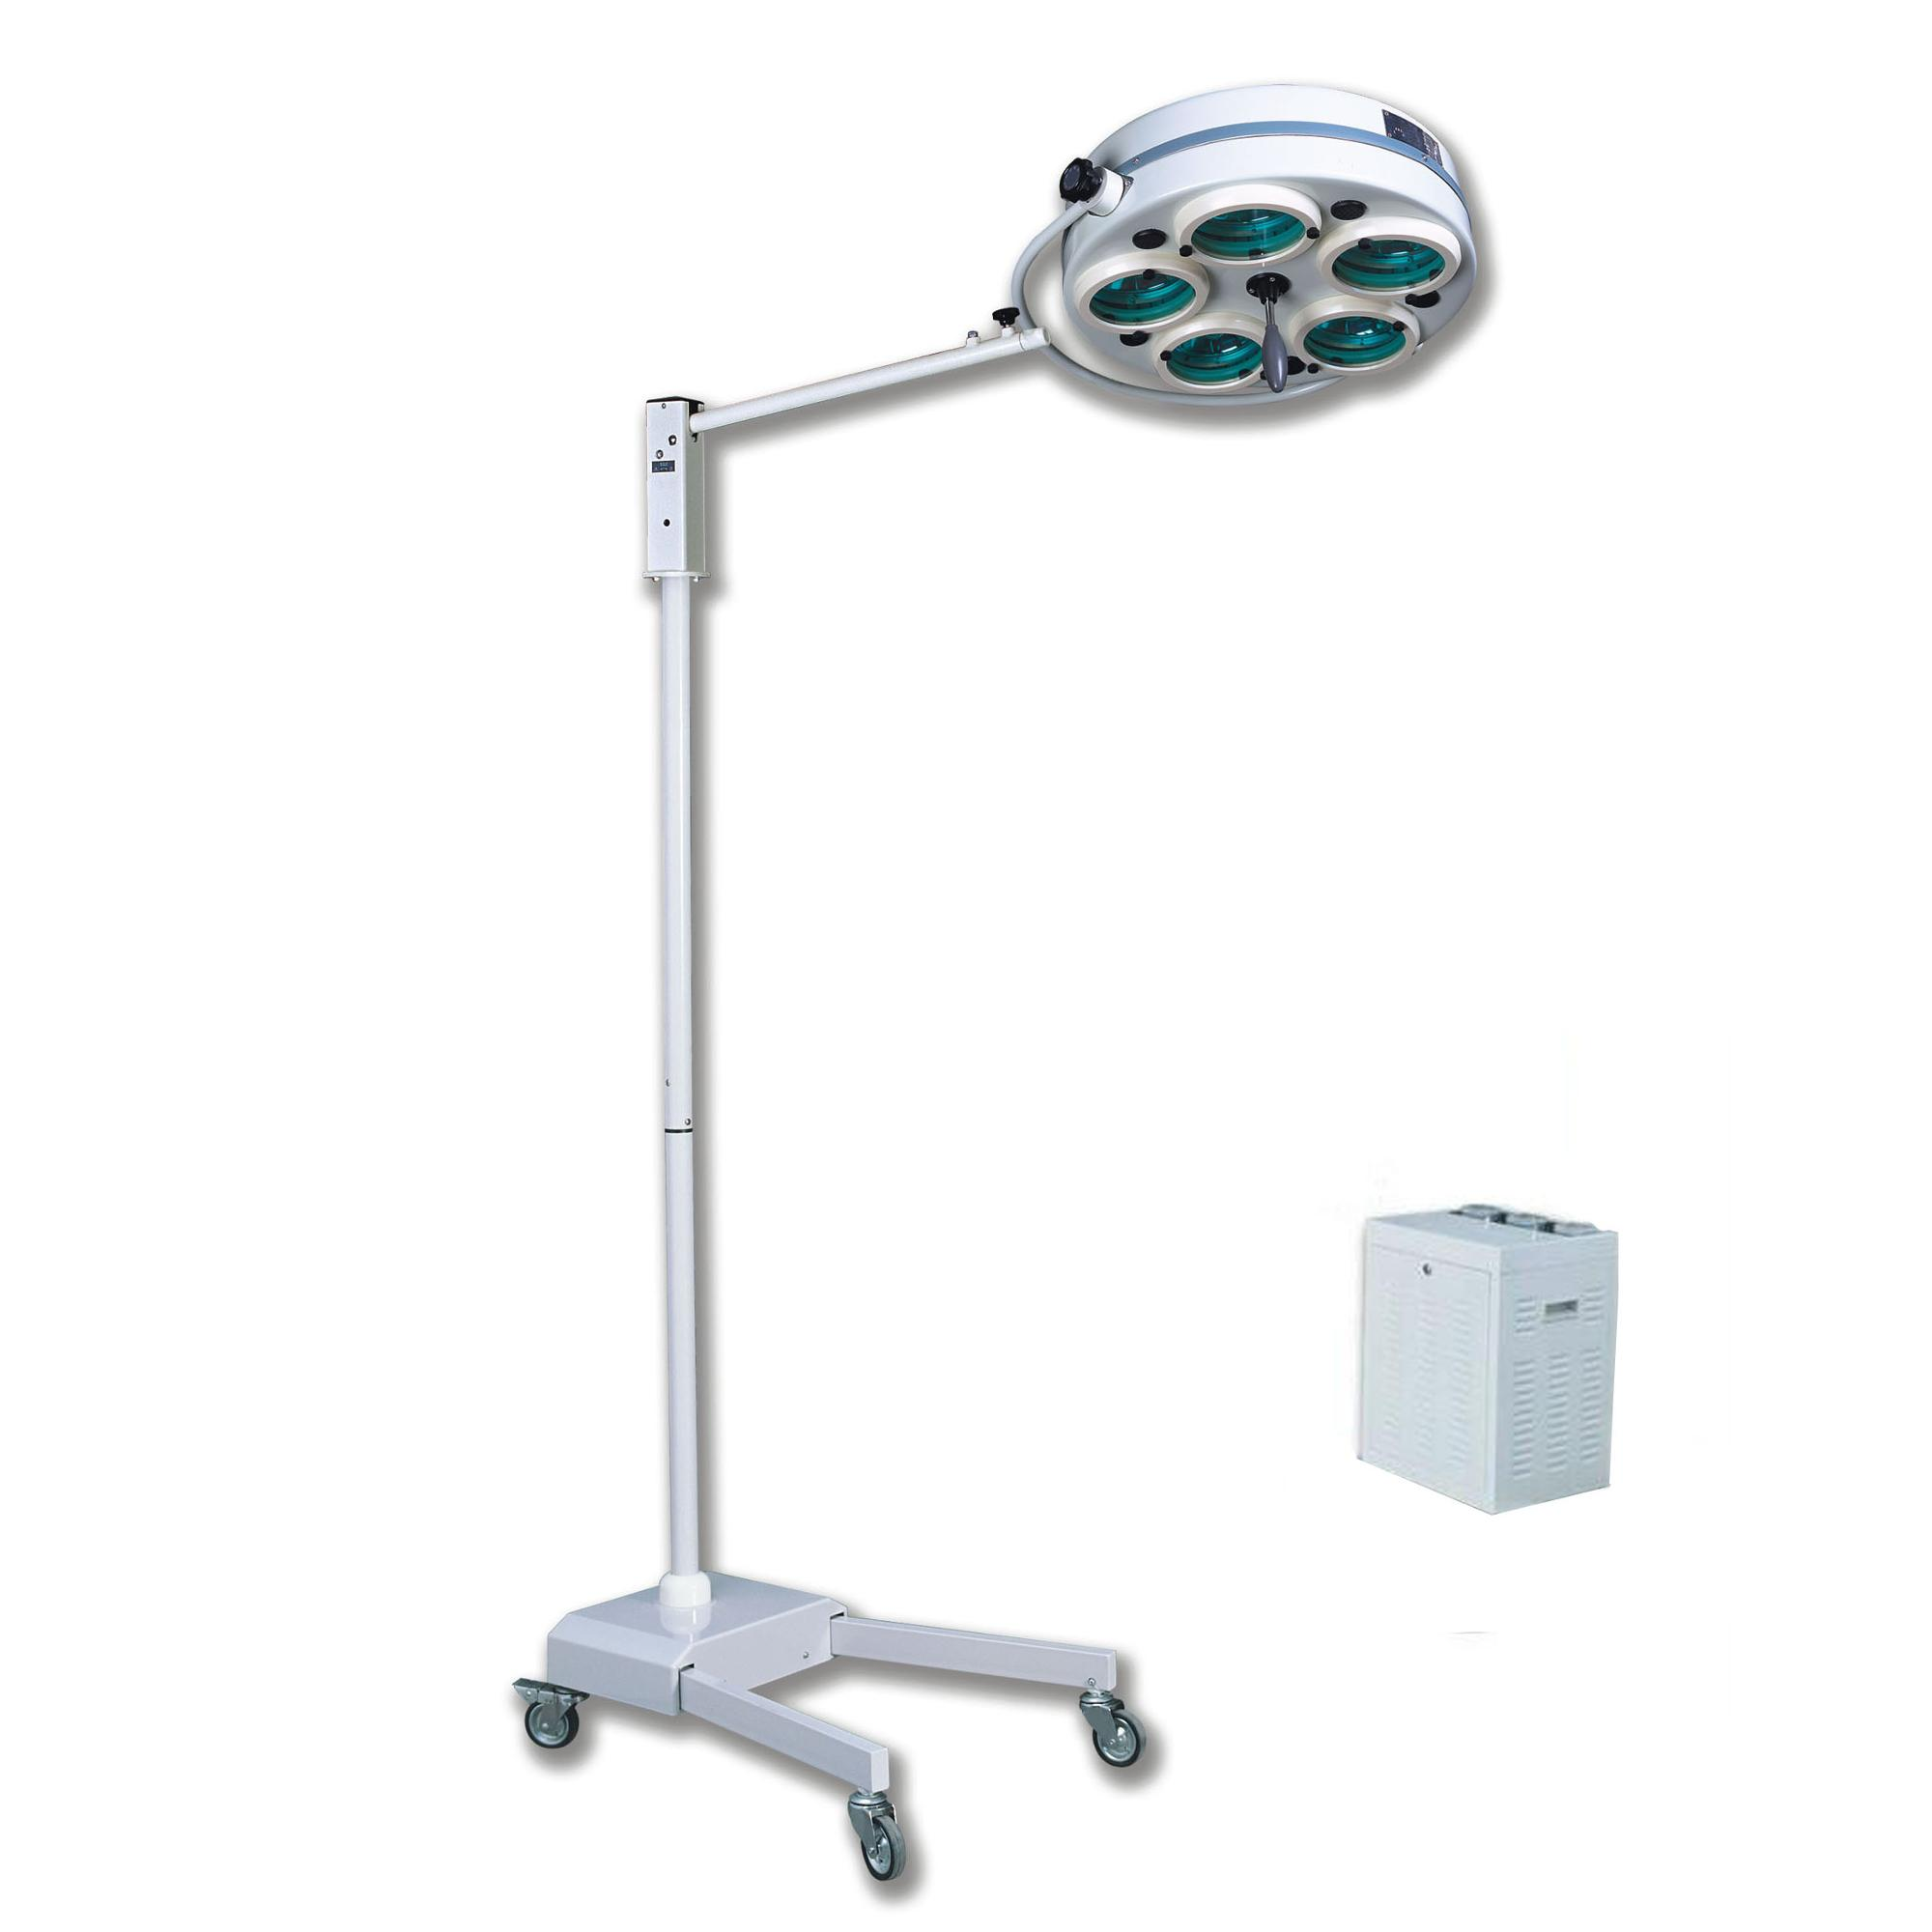 Hot and Cheap Celling/Mobile Surgical Room Light Shadowless Operating Light FL05 Price